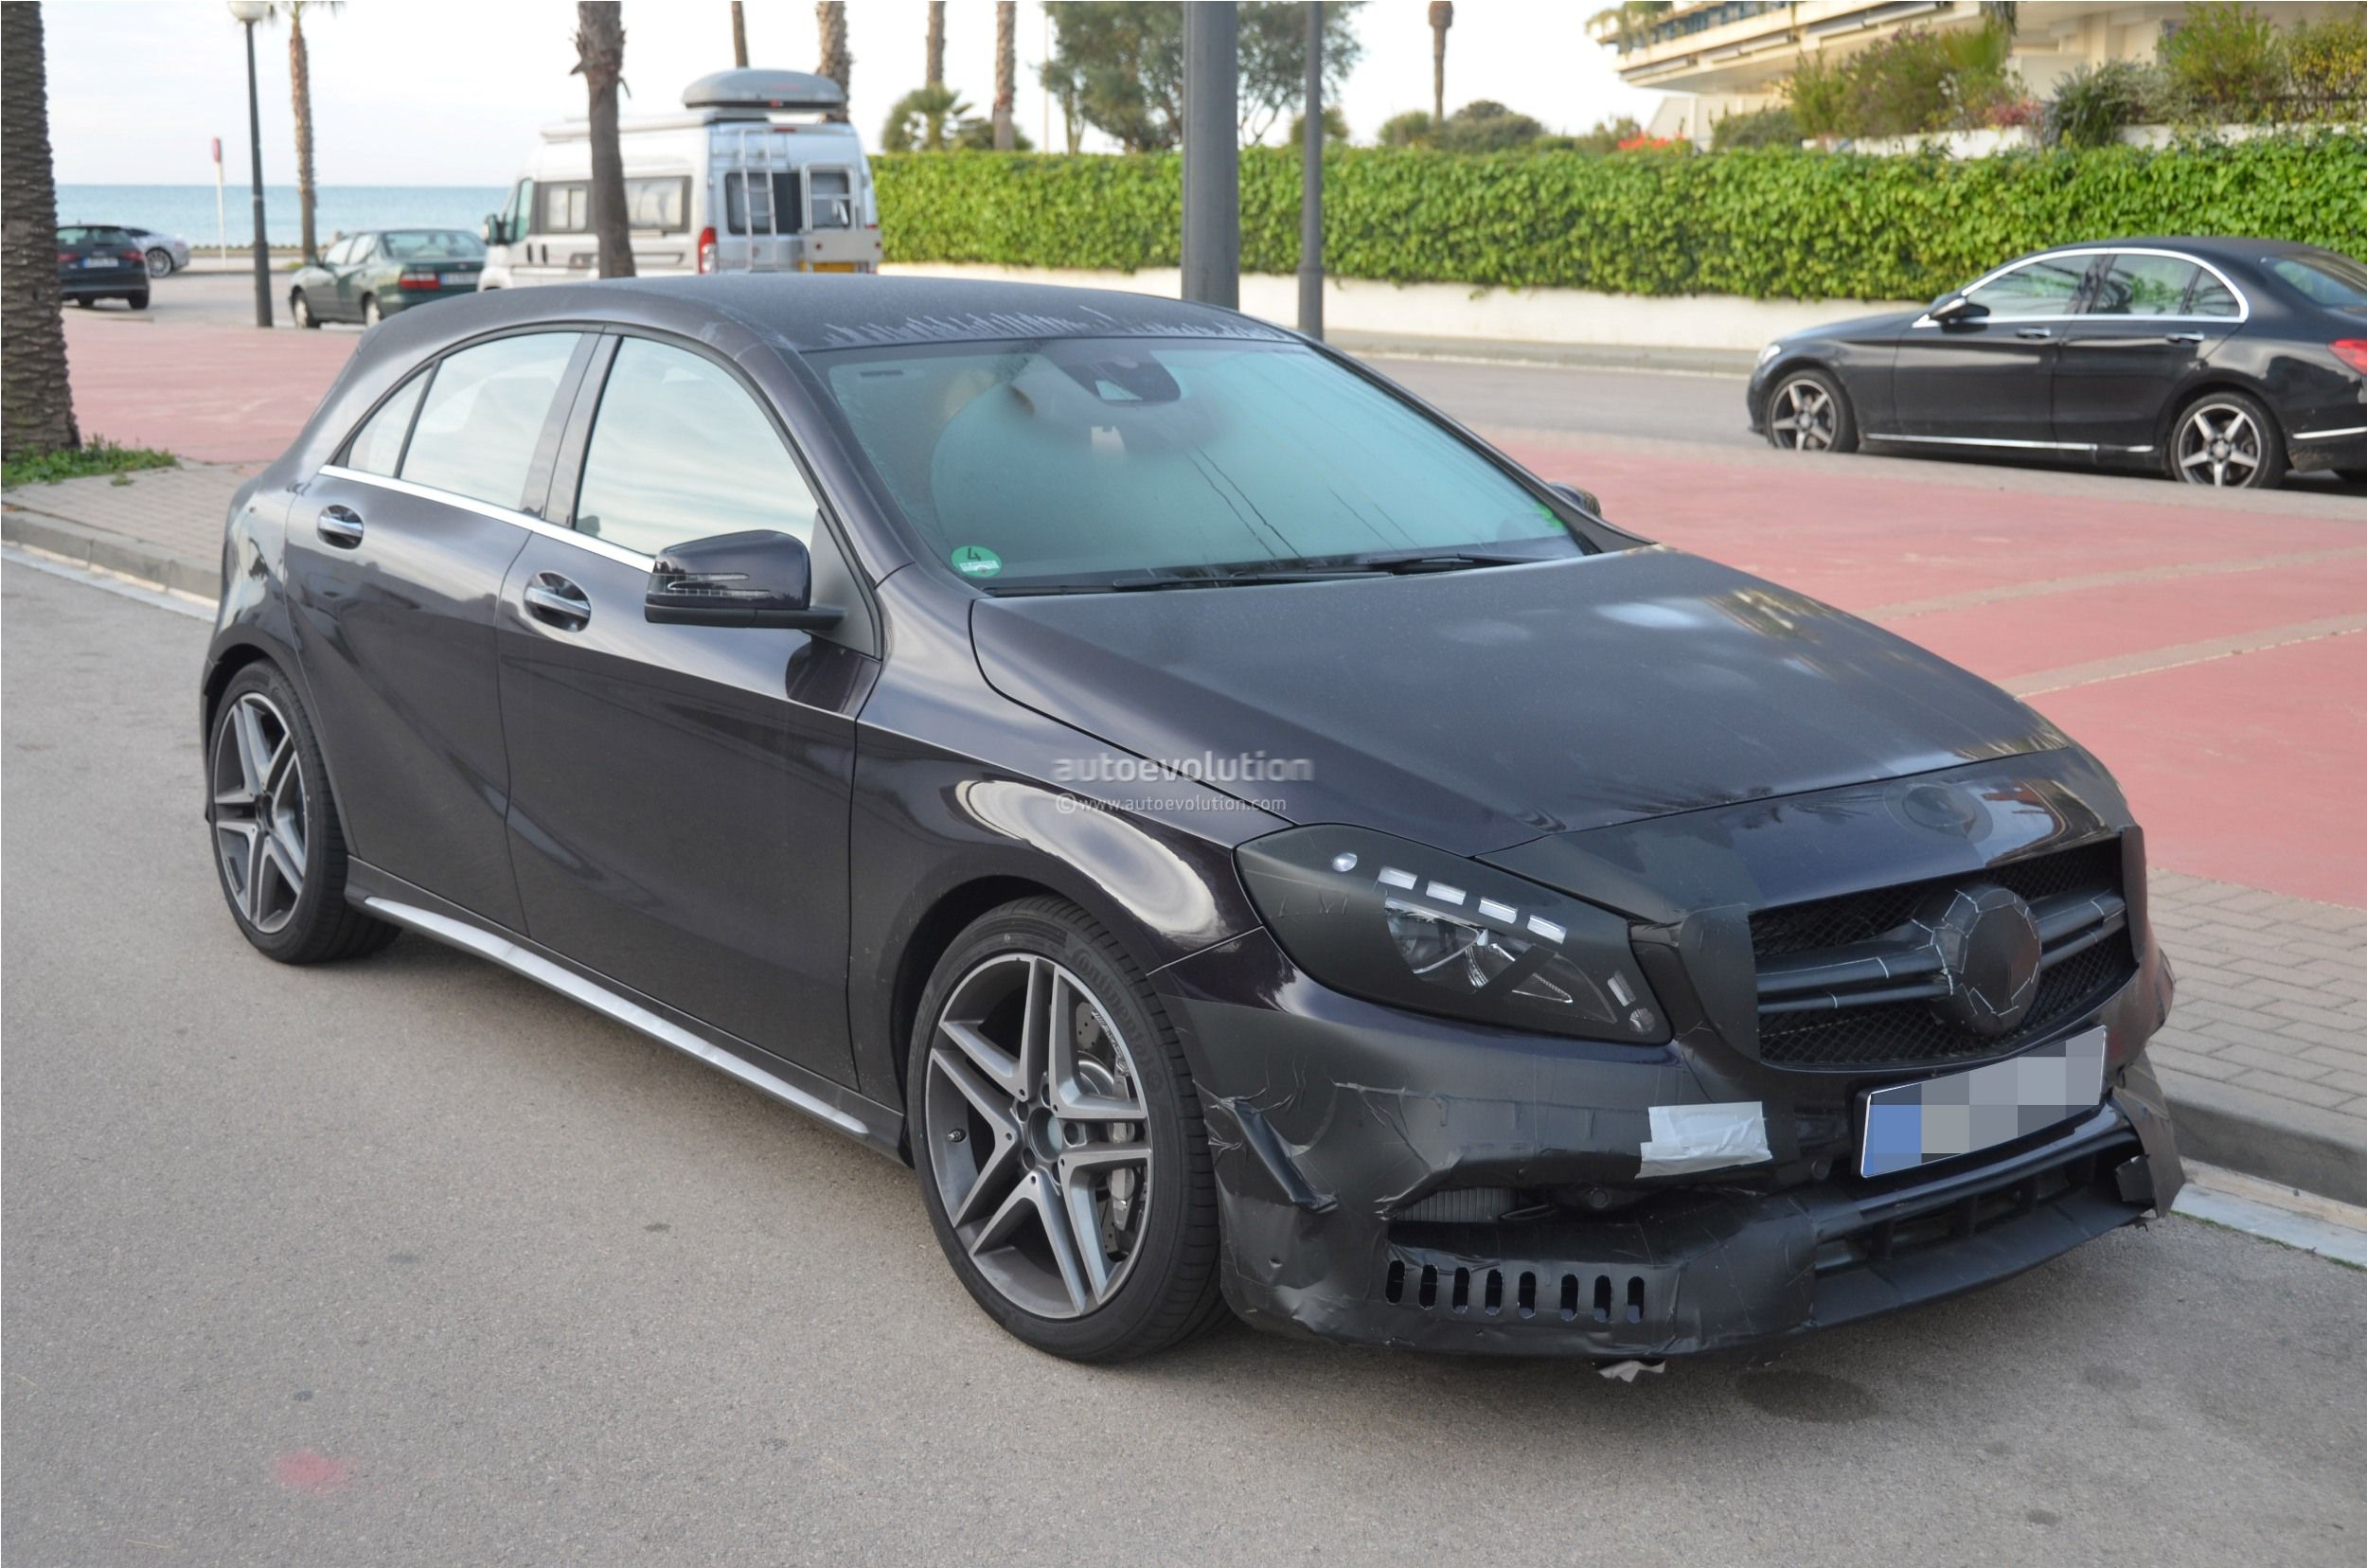 2016 mercedes benz a 45 amg facelift spied photo gallery autoevolution. Black Bedroom Furniture Sets. Home Design Ideas